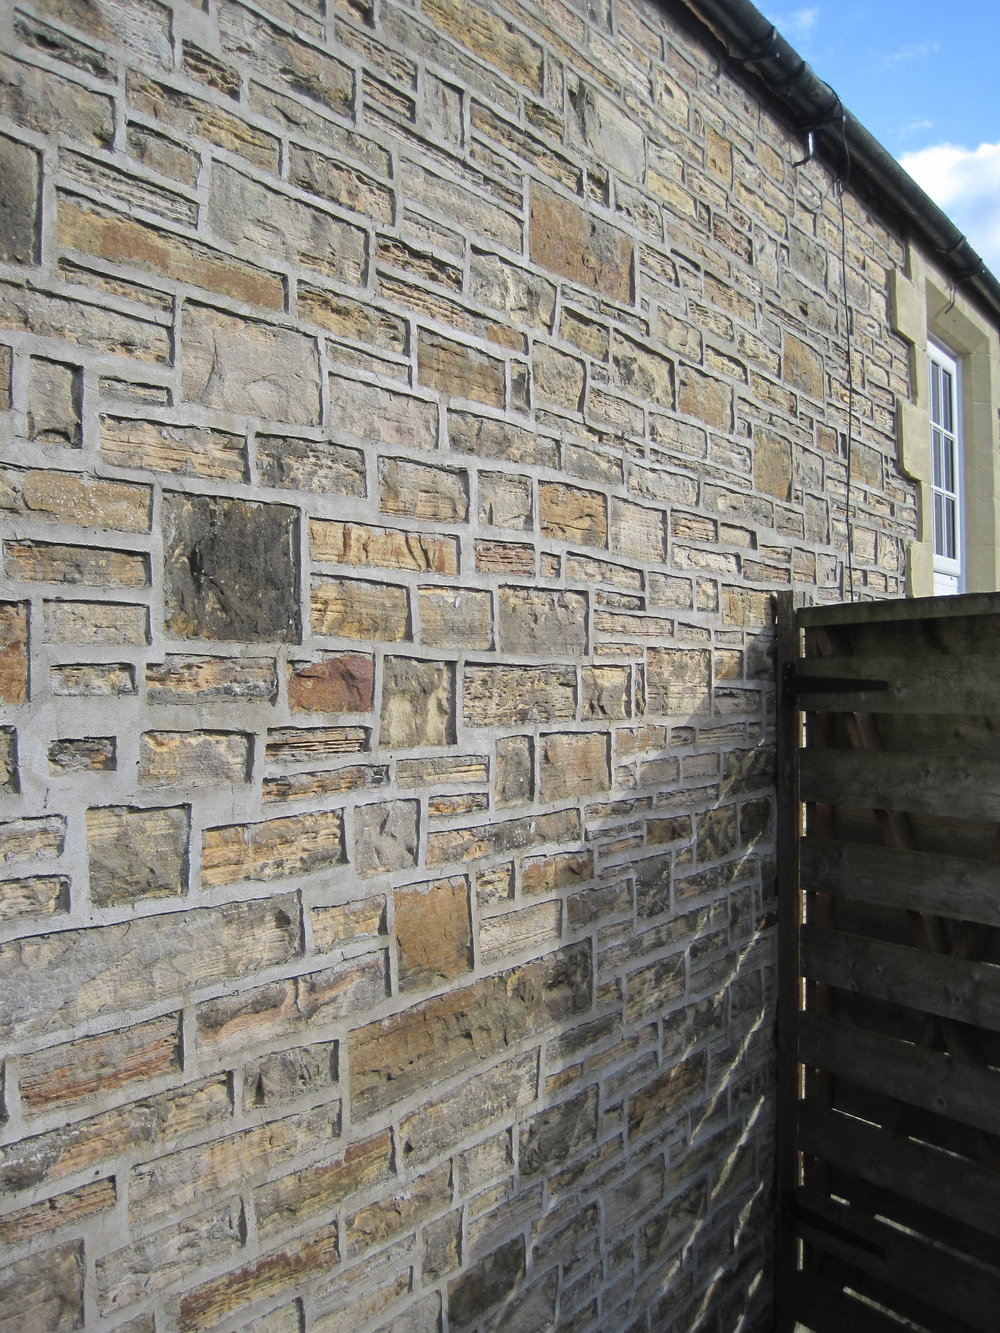 Ribbon style pointing on an old school house in Northumberland.